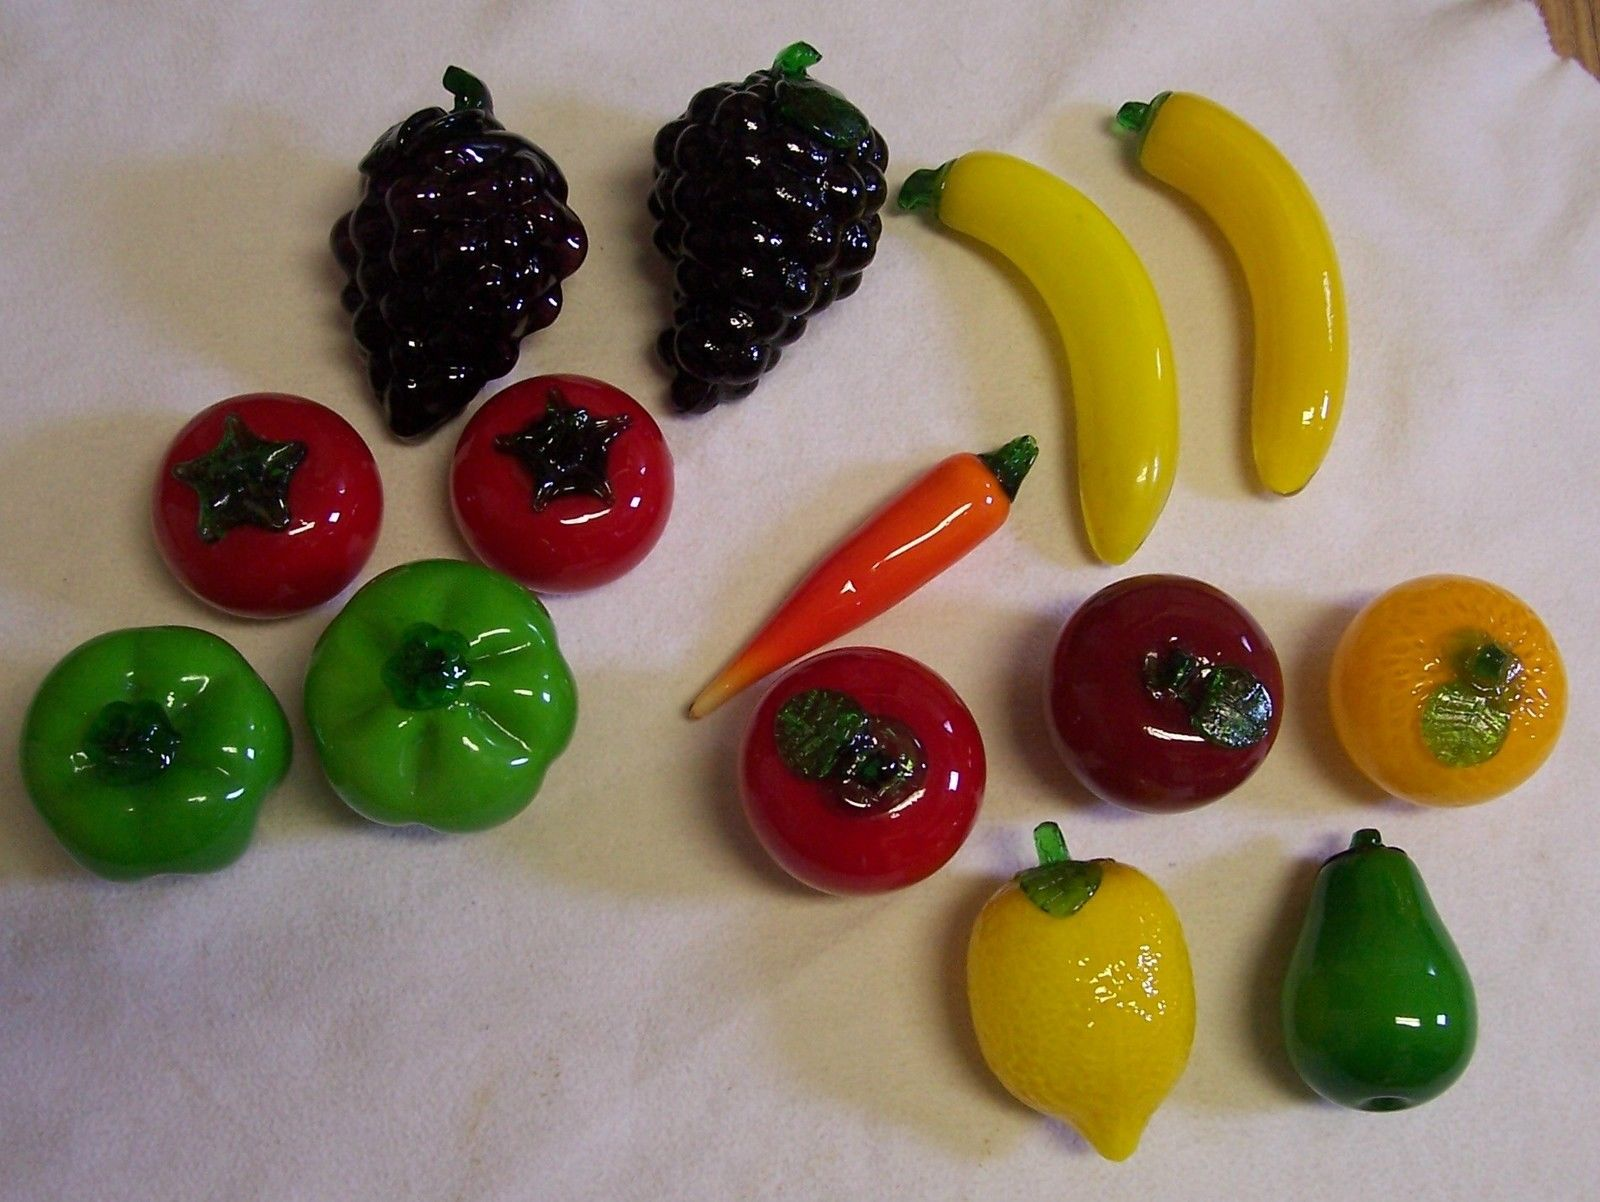 Vintage Mirano Style Art Glass Fruits And Vegetables 14 Pieces 5 Duplicates Glass Art Fruit Vegetables